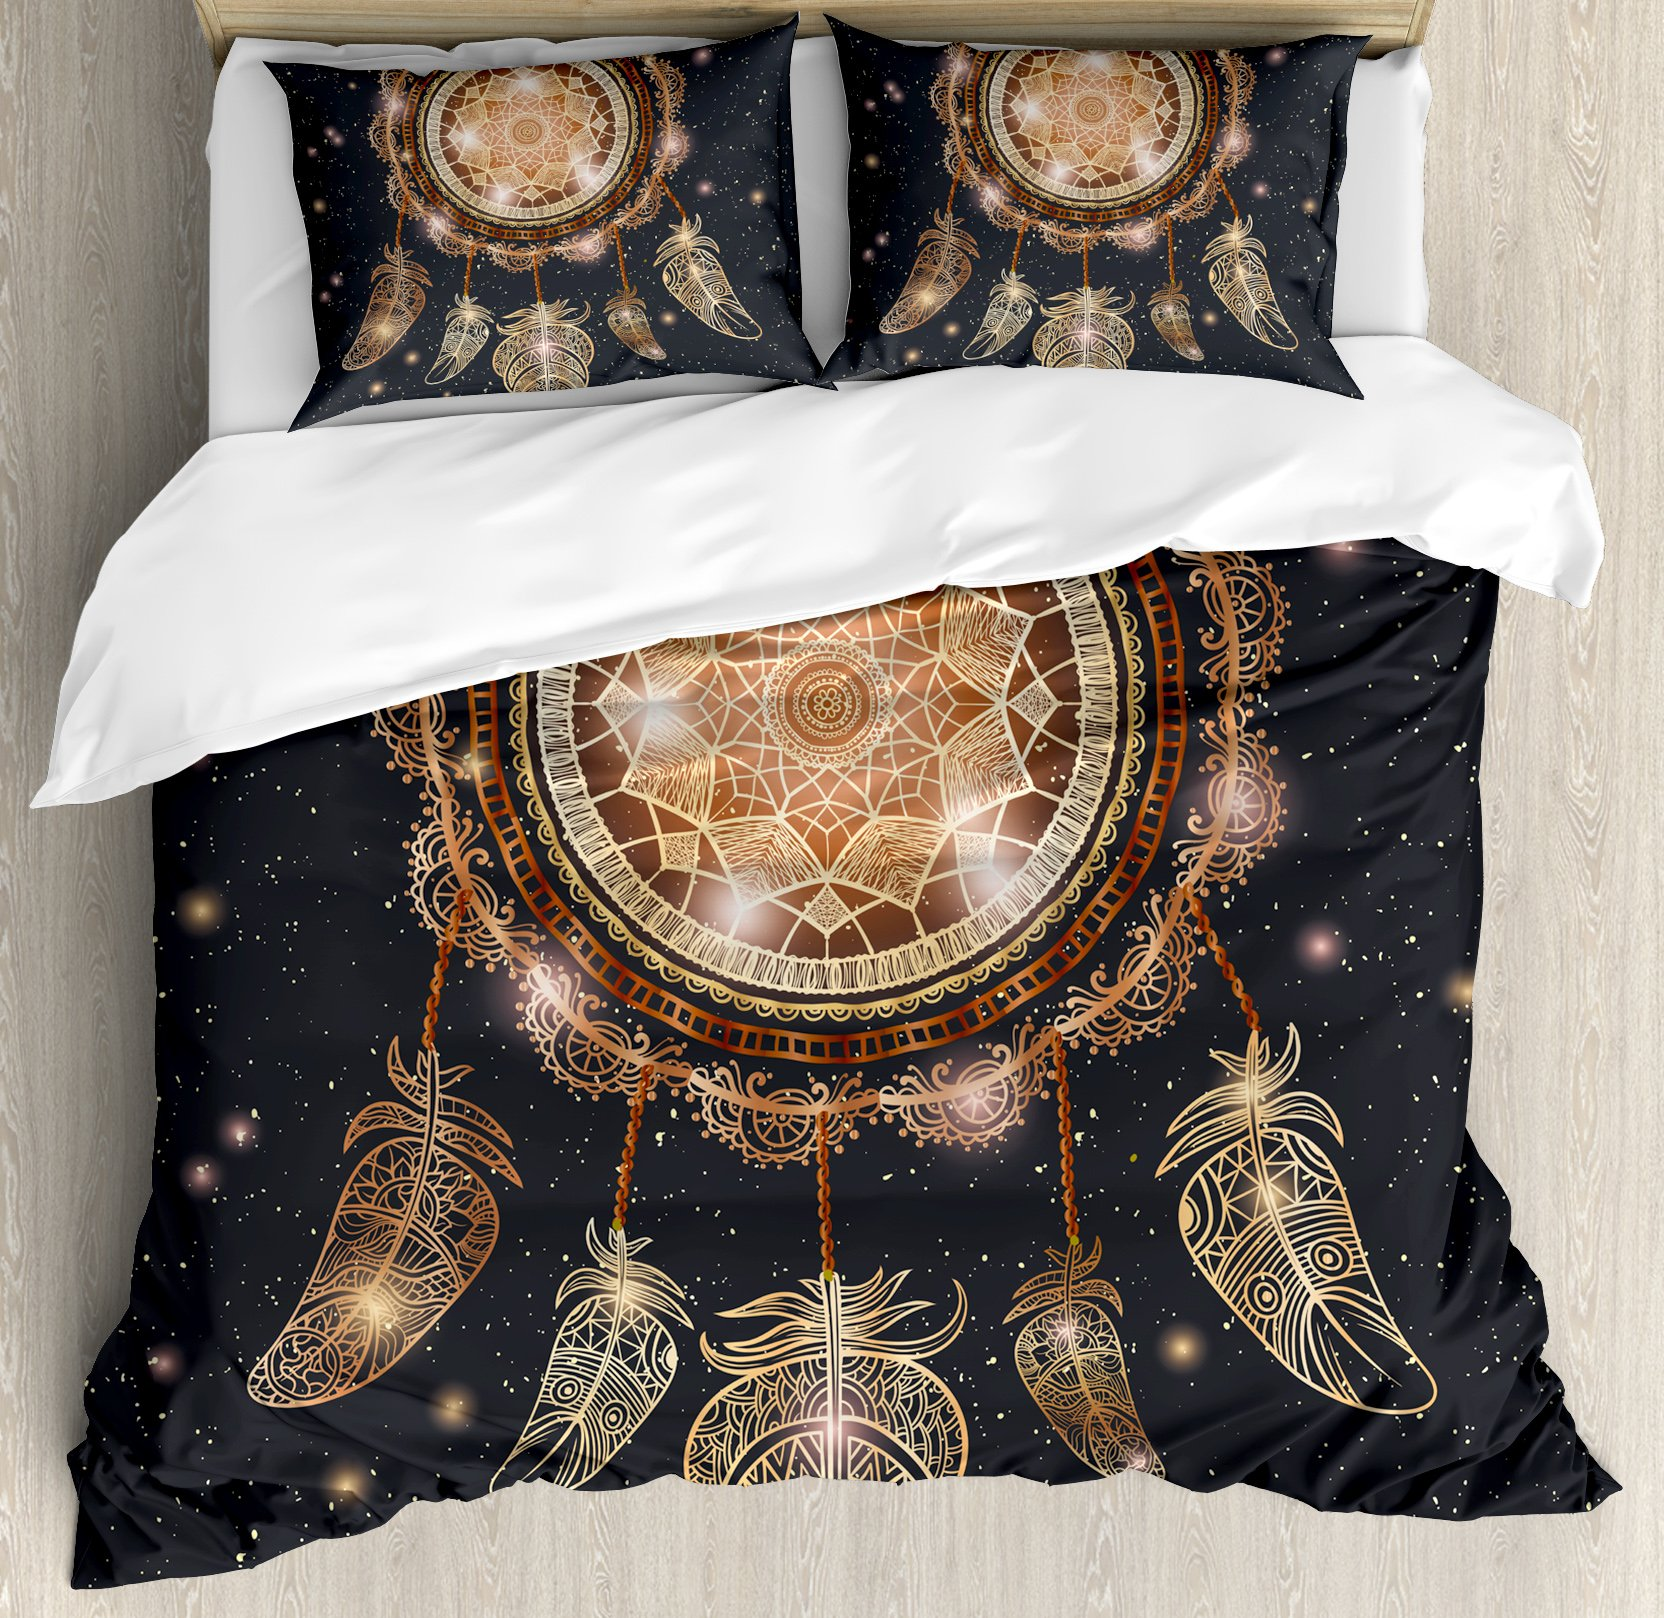 Ambesonne Mandala Duvet Cover Set Queen Size, Native American Dreamcatcher Motif Magic Feathers Hippie Design on Starry Backdrop, Decorative 3 Piece Bedding Set with 2 Pillow Shams, Multicolor